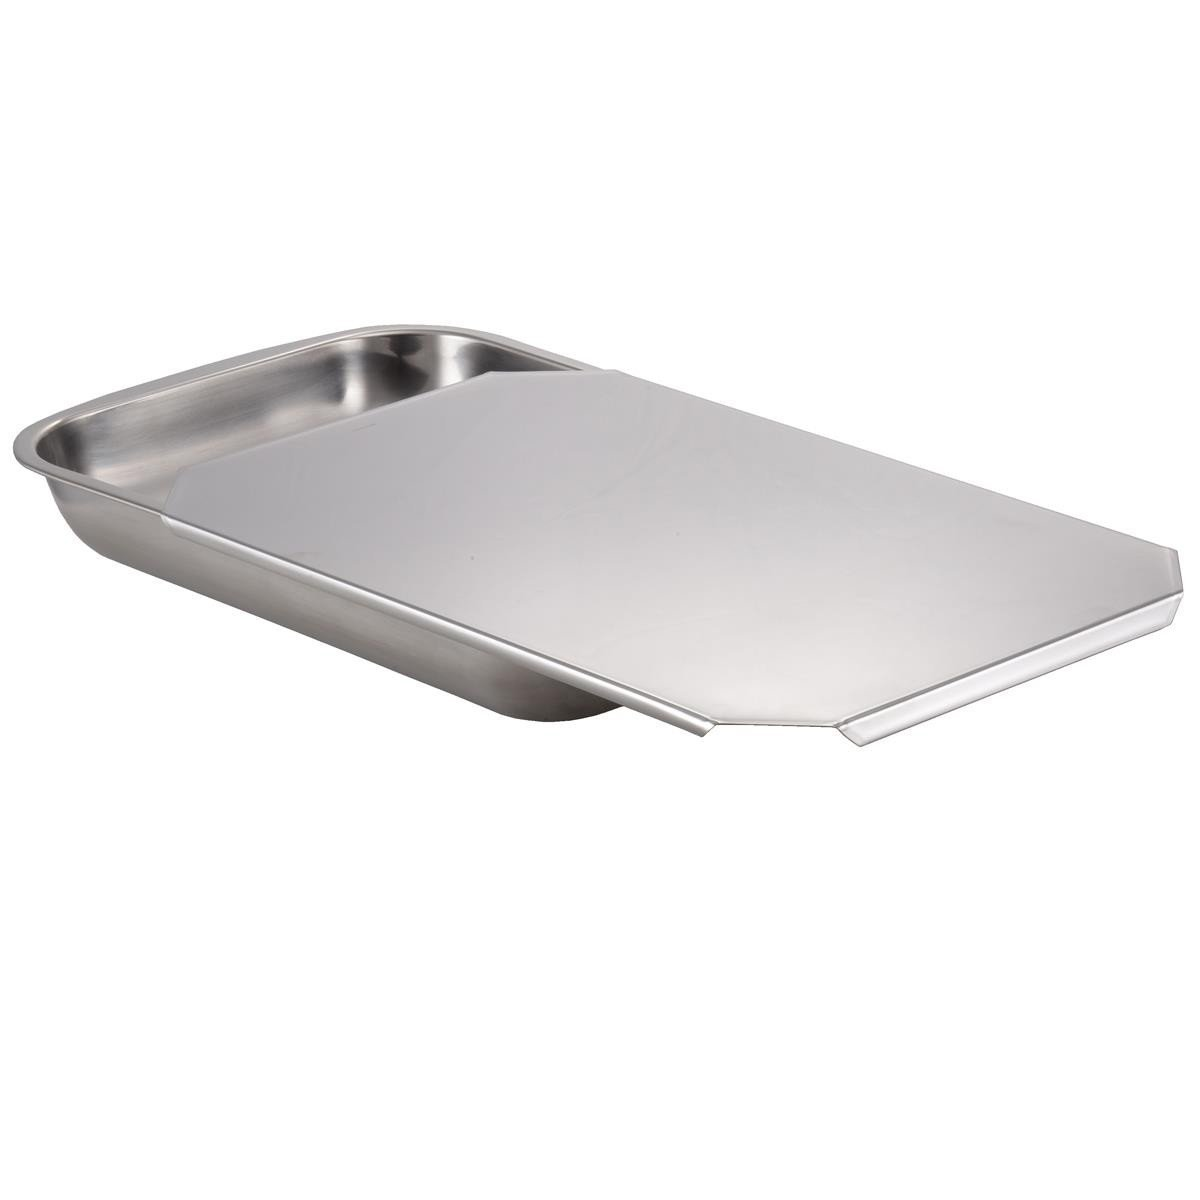 Libertyware - Stainless Steel Cake Pan with Cover - 9